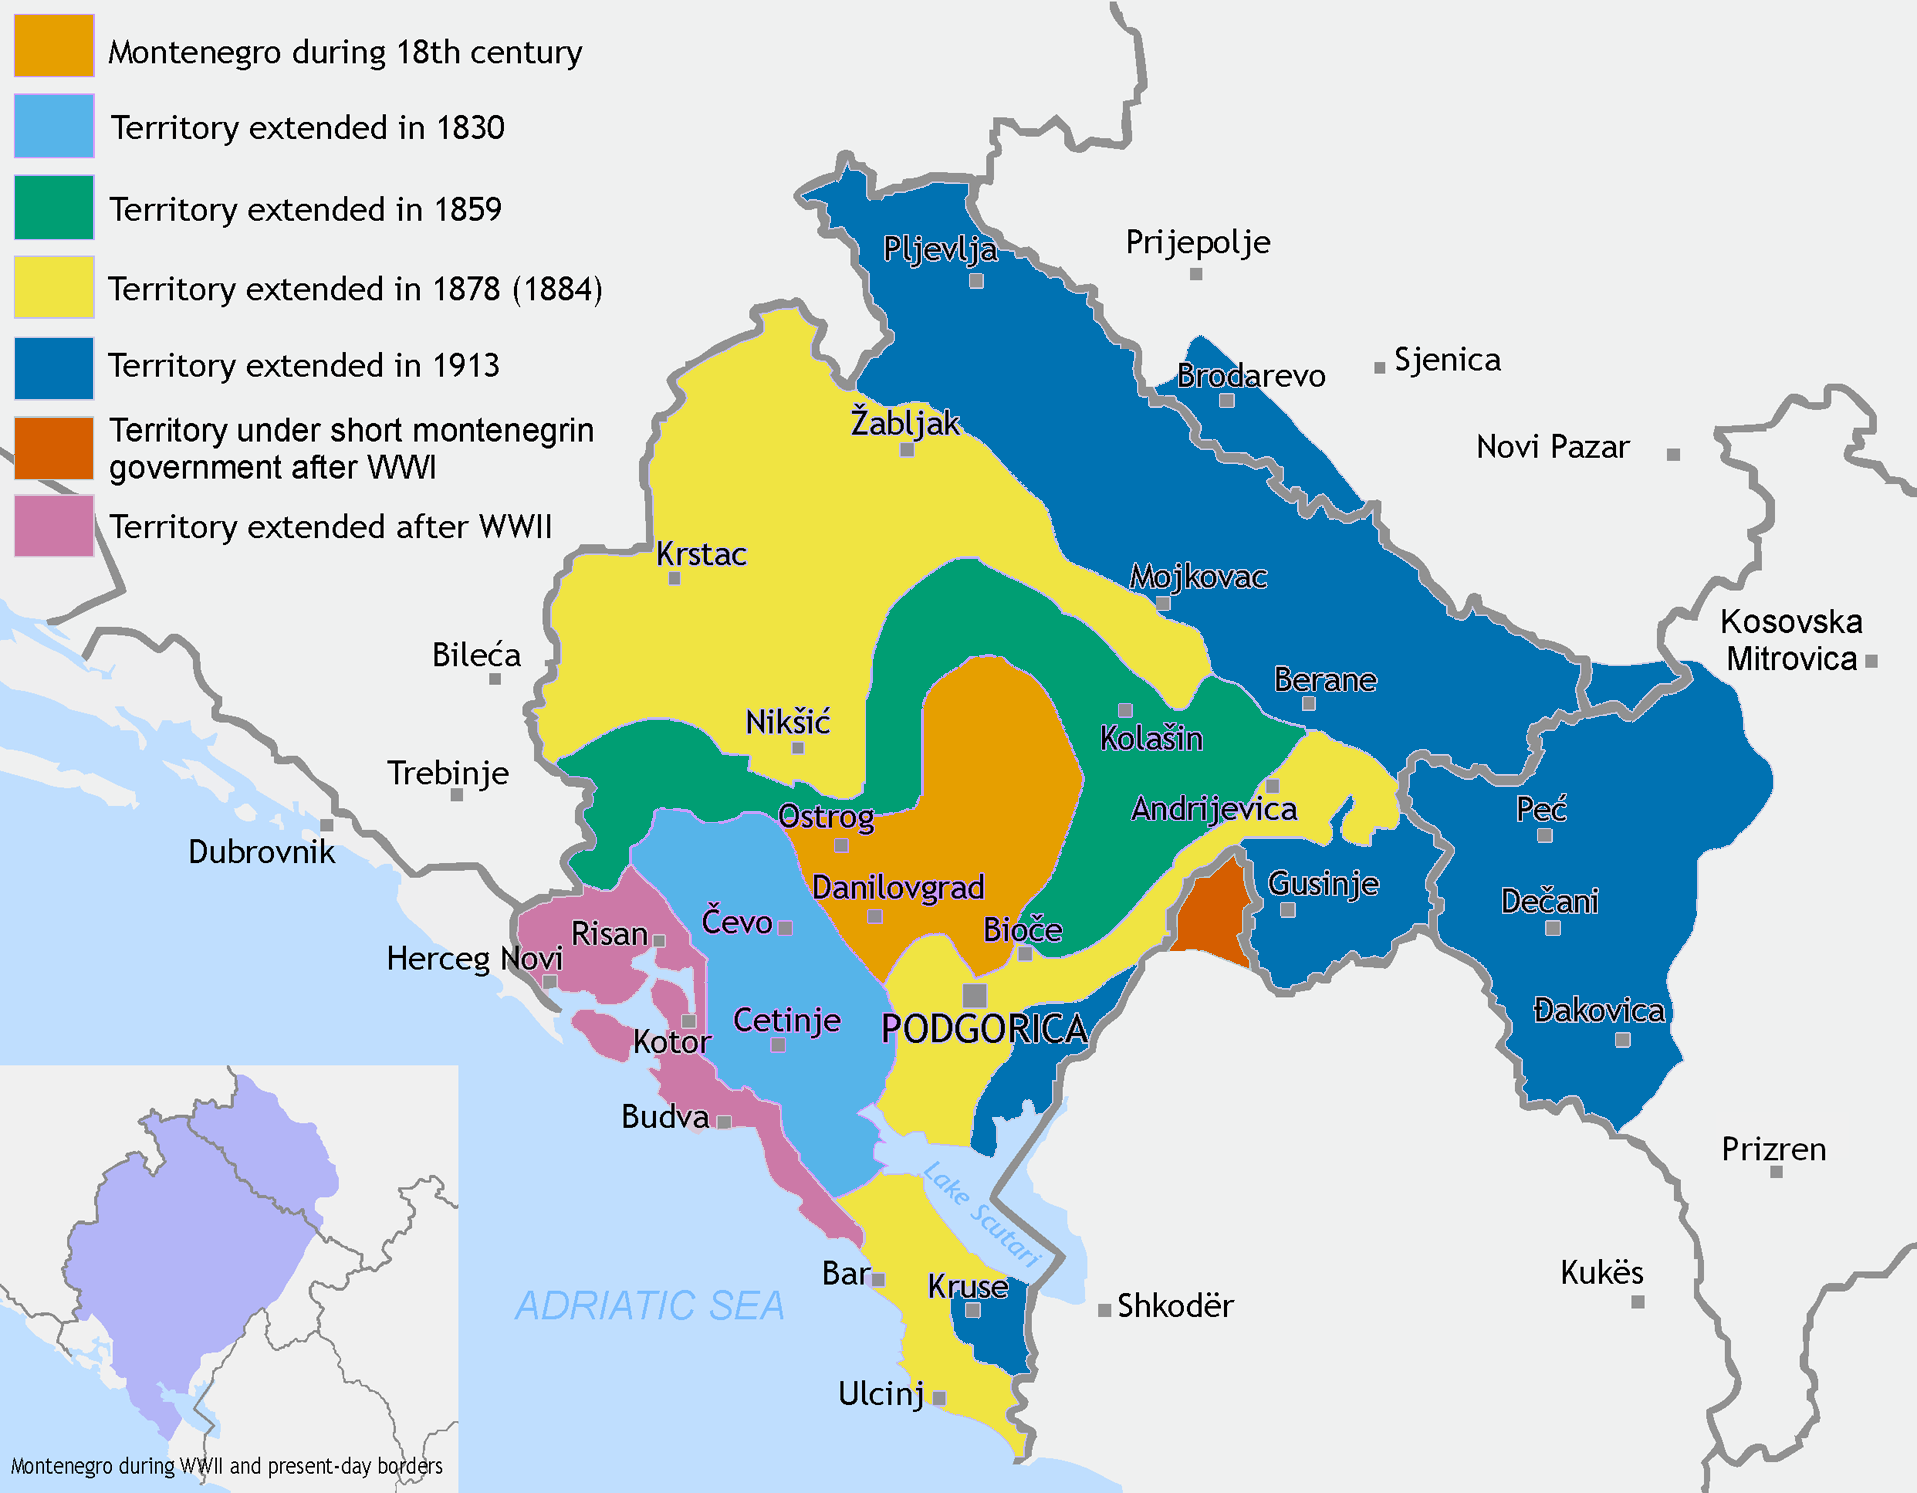 Montenegros territorial expansion from 18301944 compared to its